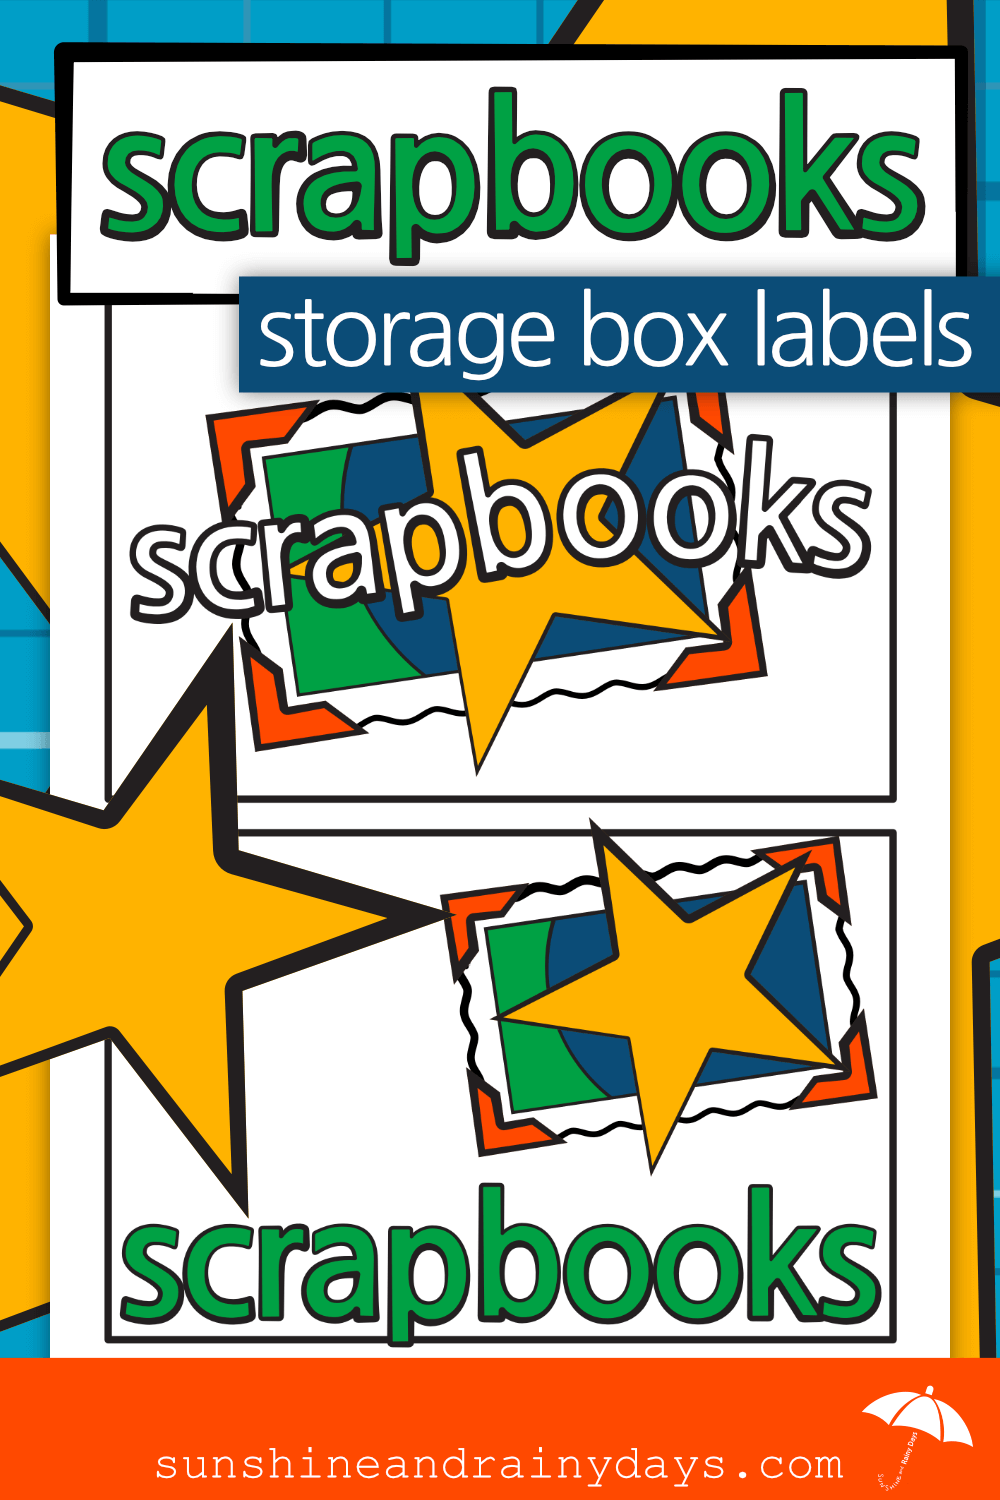 Scrapbooks Storage Box Labels (PDF)